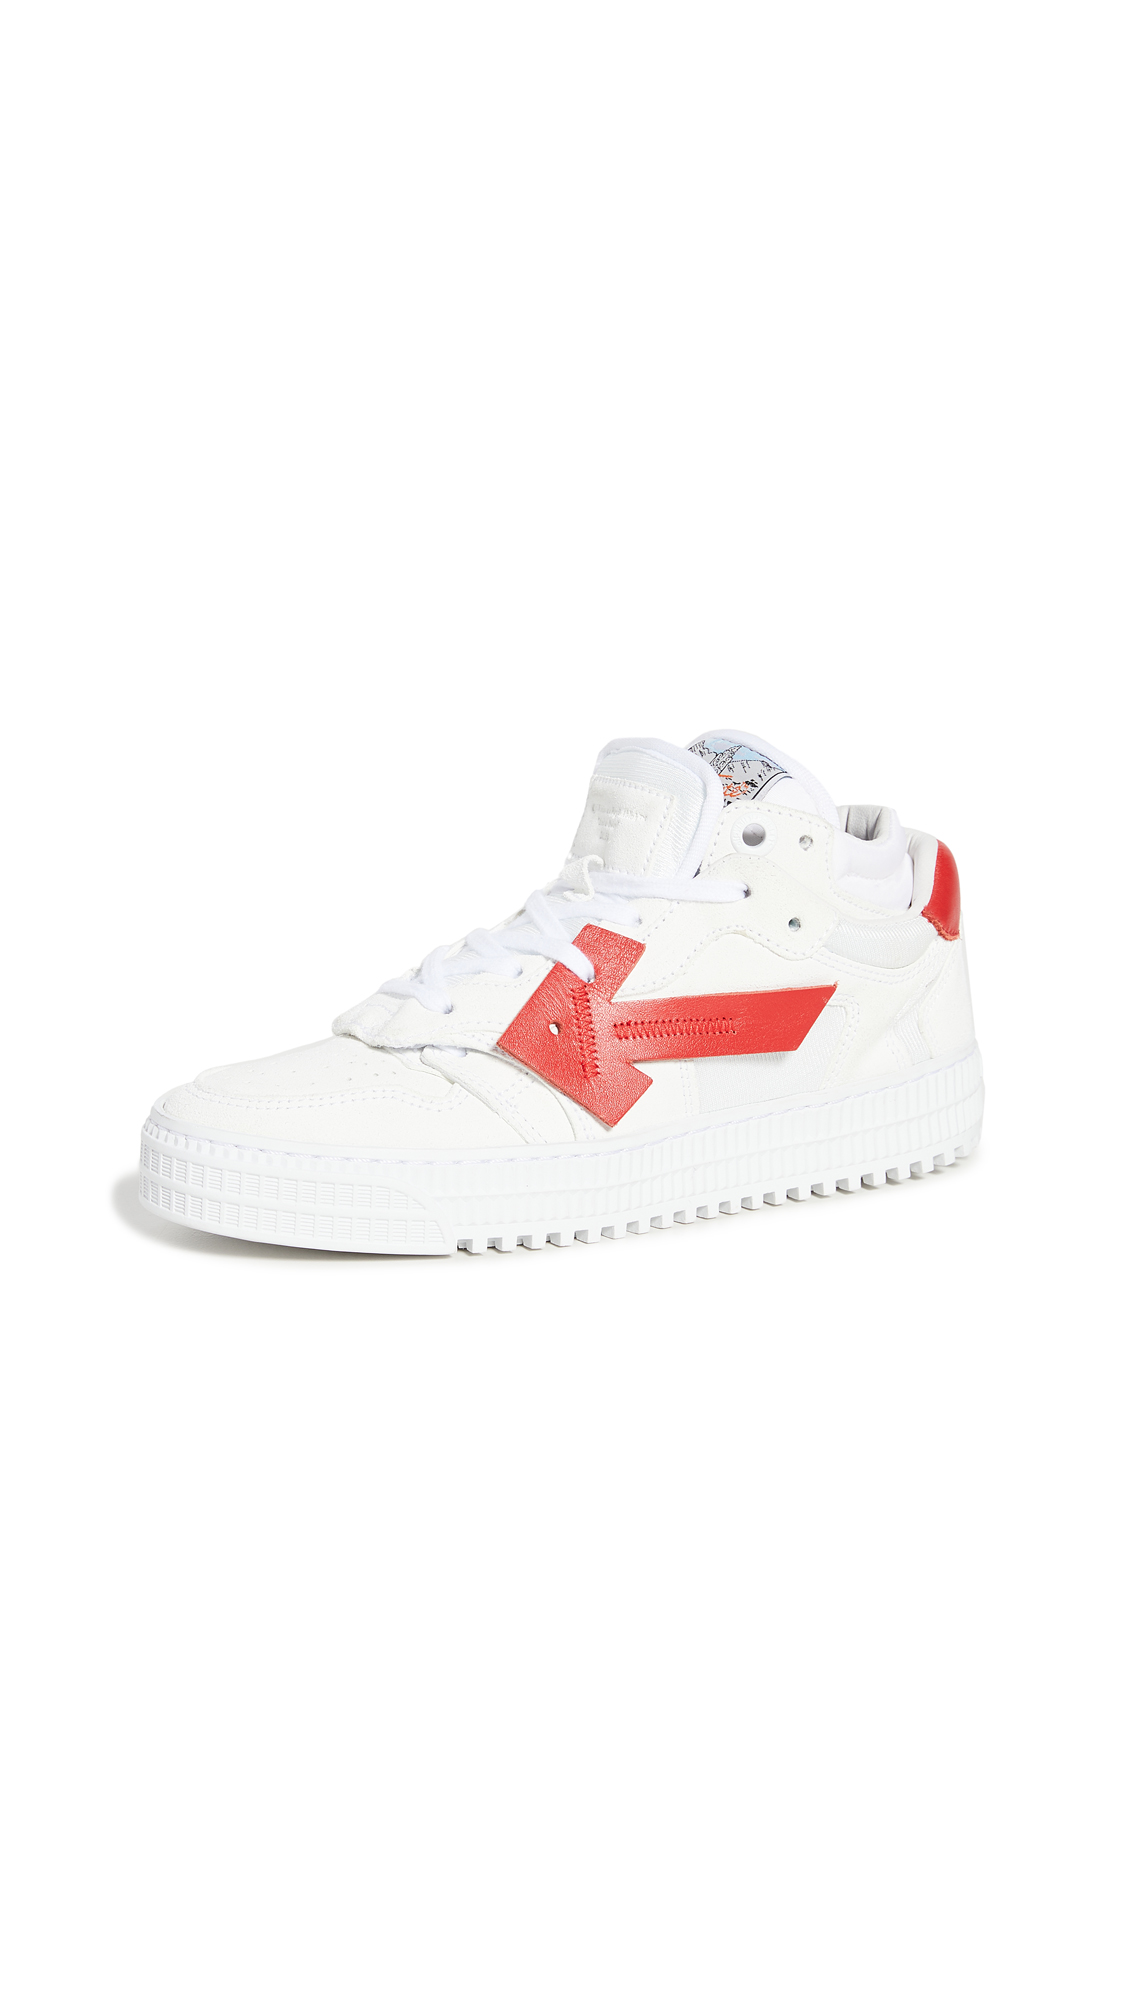 Buy Off-White 3.0 Low Sneakers online, shop Off-White